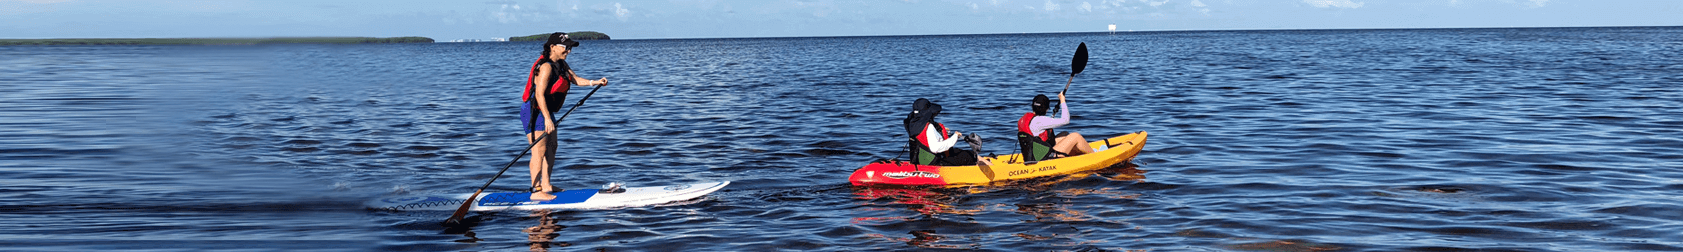 Deering Point Kayak and Paddleboard Rentals